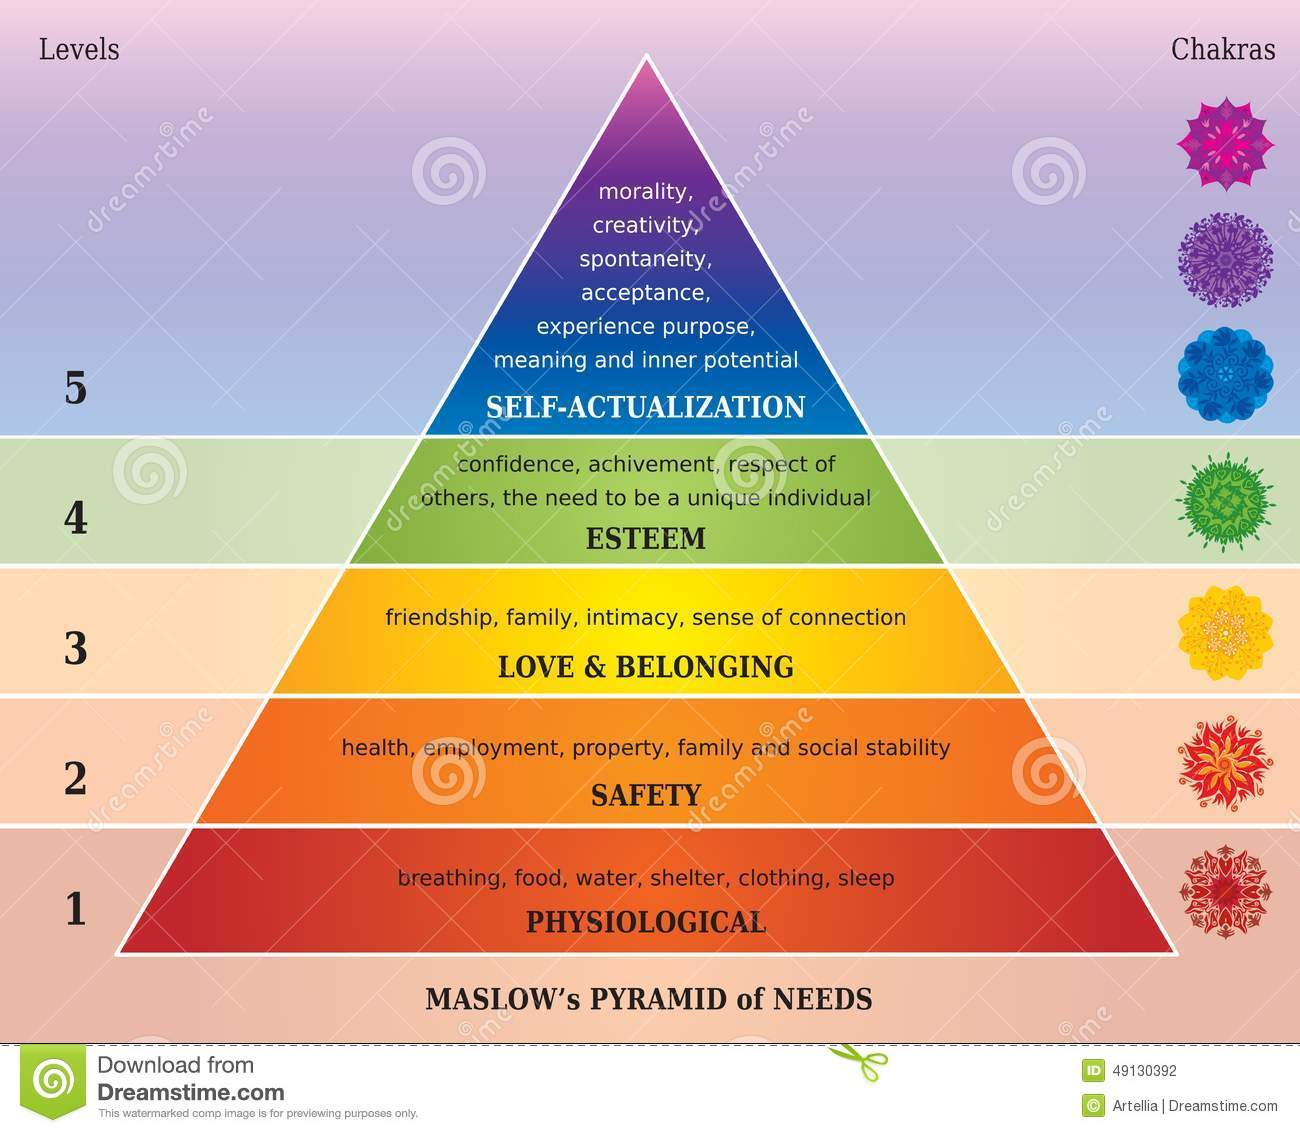 hight resolution of maslows pyramid of needs diagram with chakras and mandalas in rainbow colors